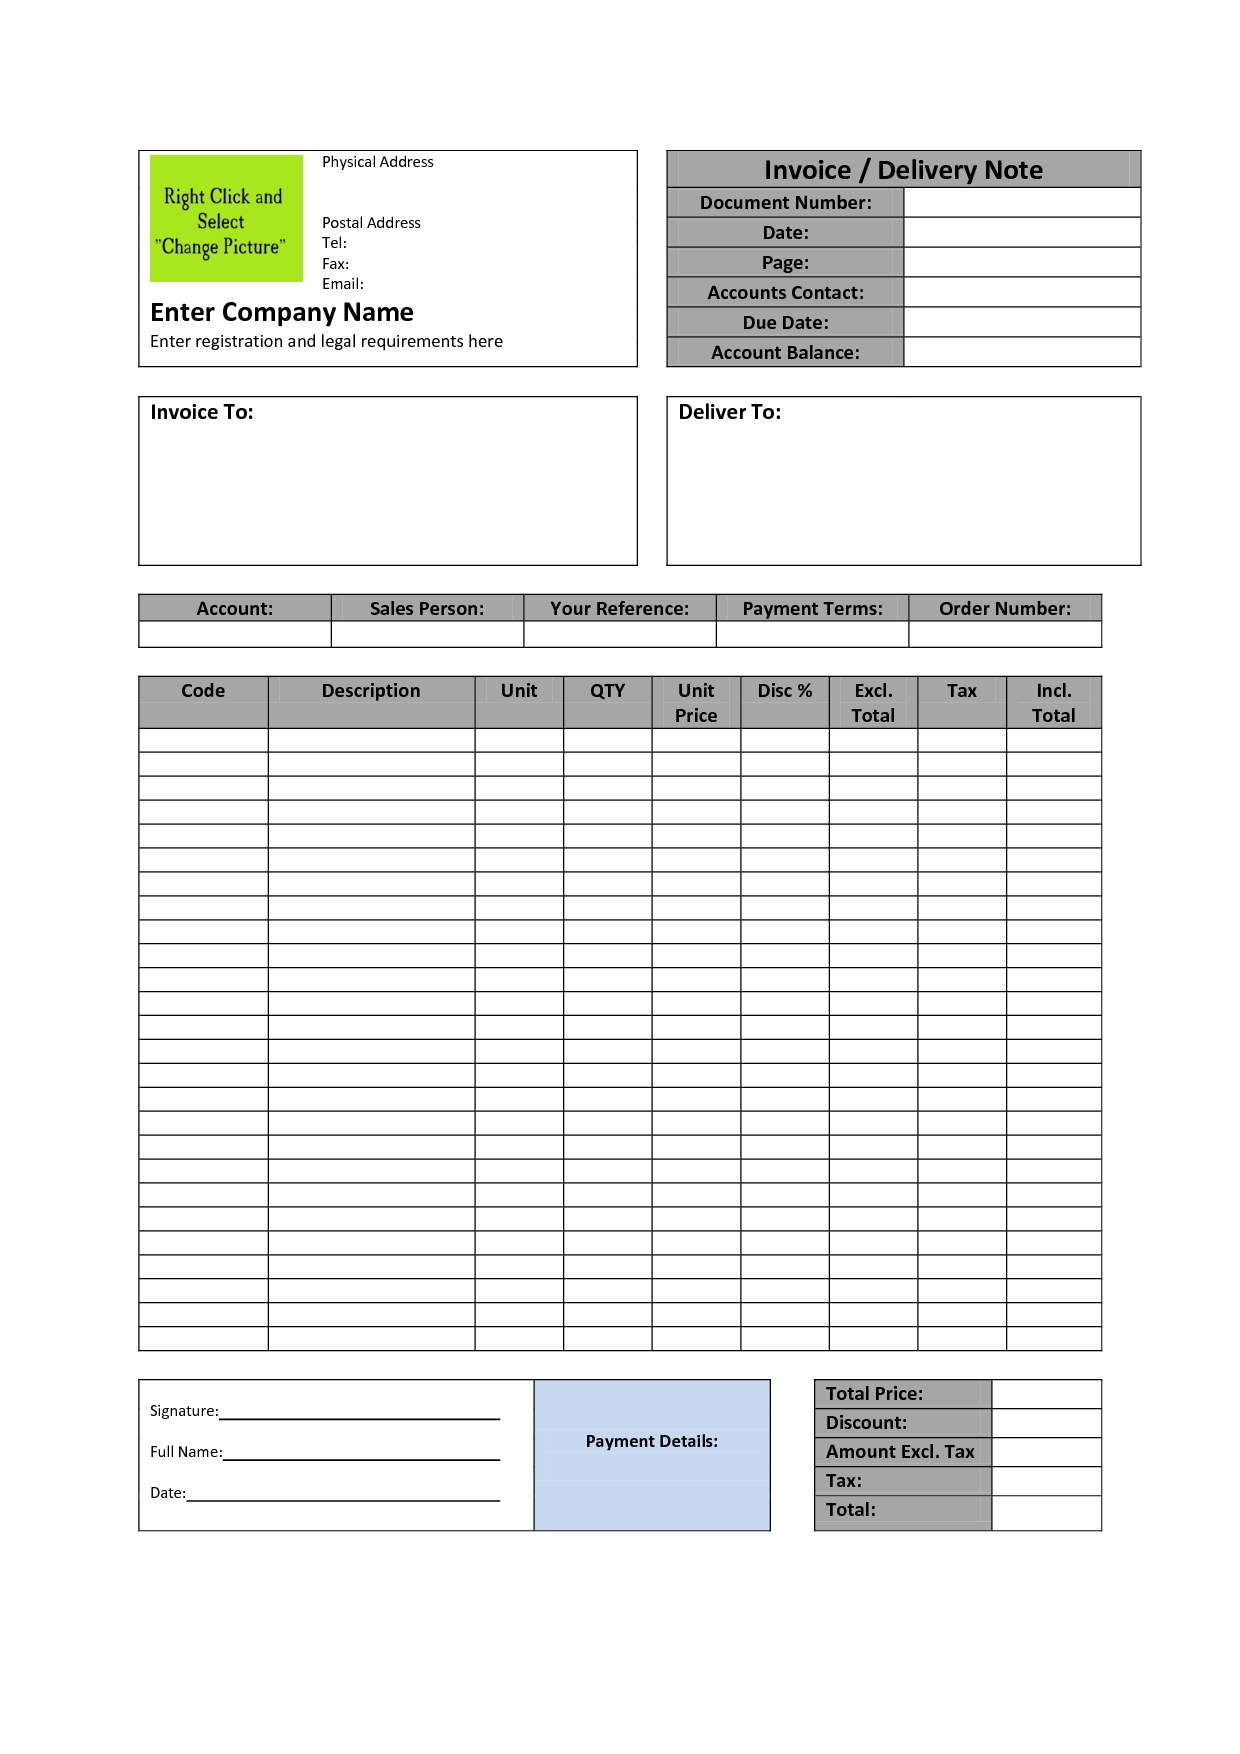 word doc invoice template 2016easy2yes easy2yes word doc invoice template